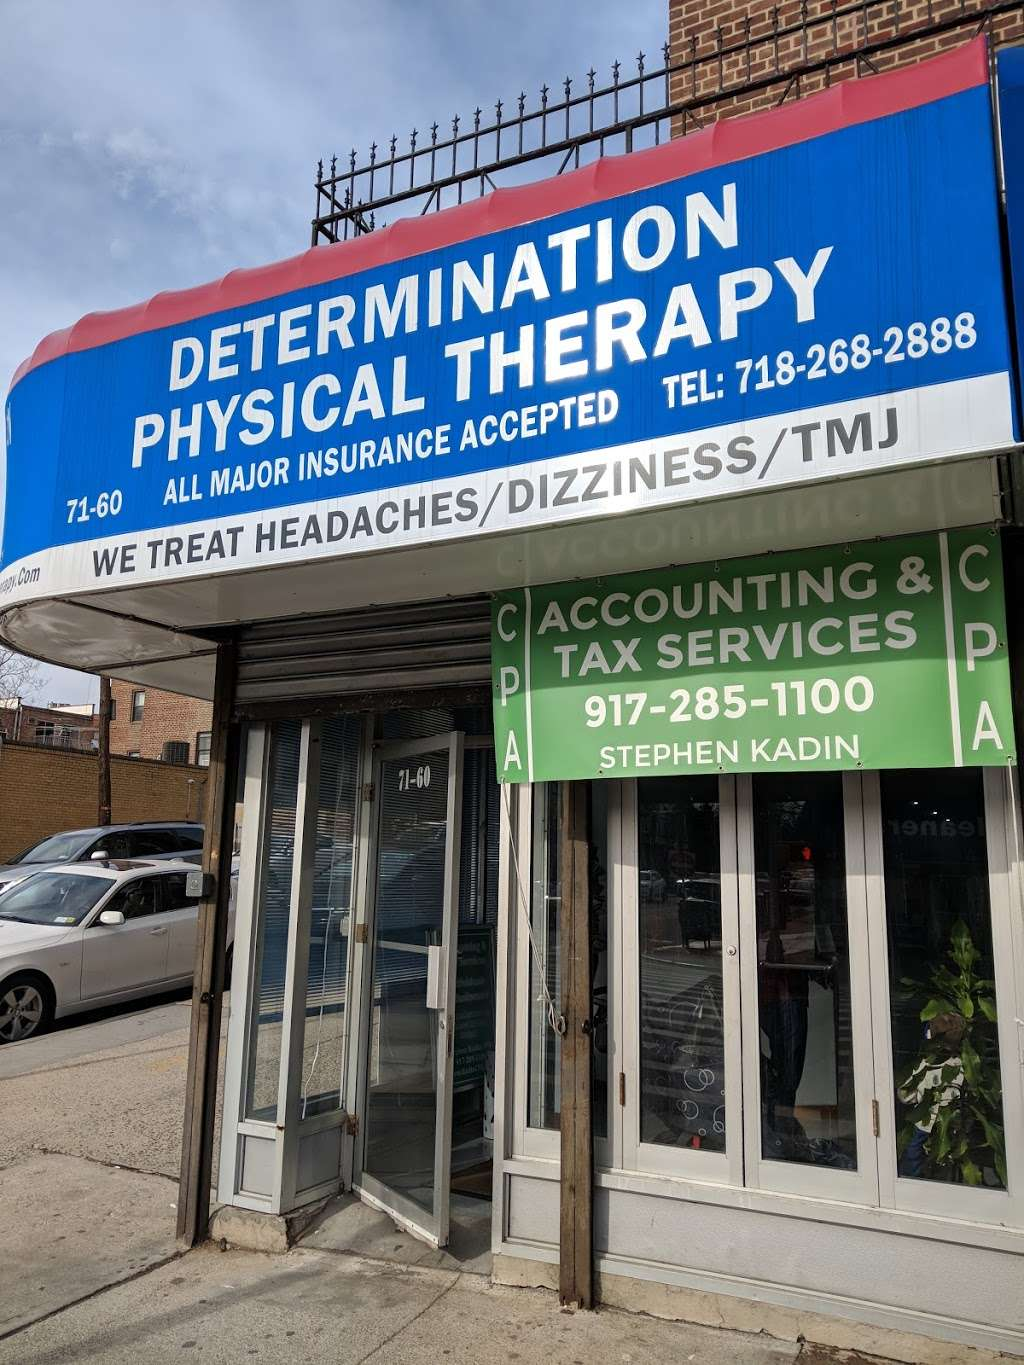 Determination Physical Therapy - physiotherapist  | Photo 1 of 2 | Address: 71-60 Yellowstone Blvd, Forest Hills, NY 11375, USA | Phone: (718) 268-2888